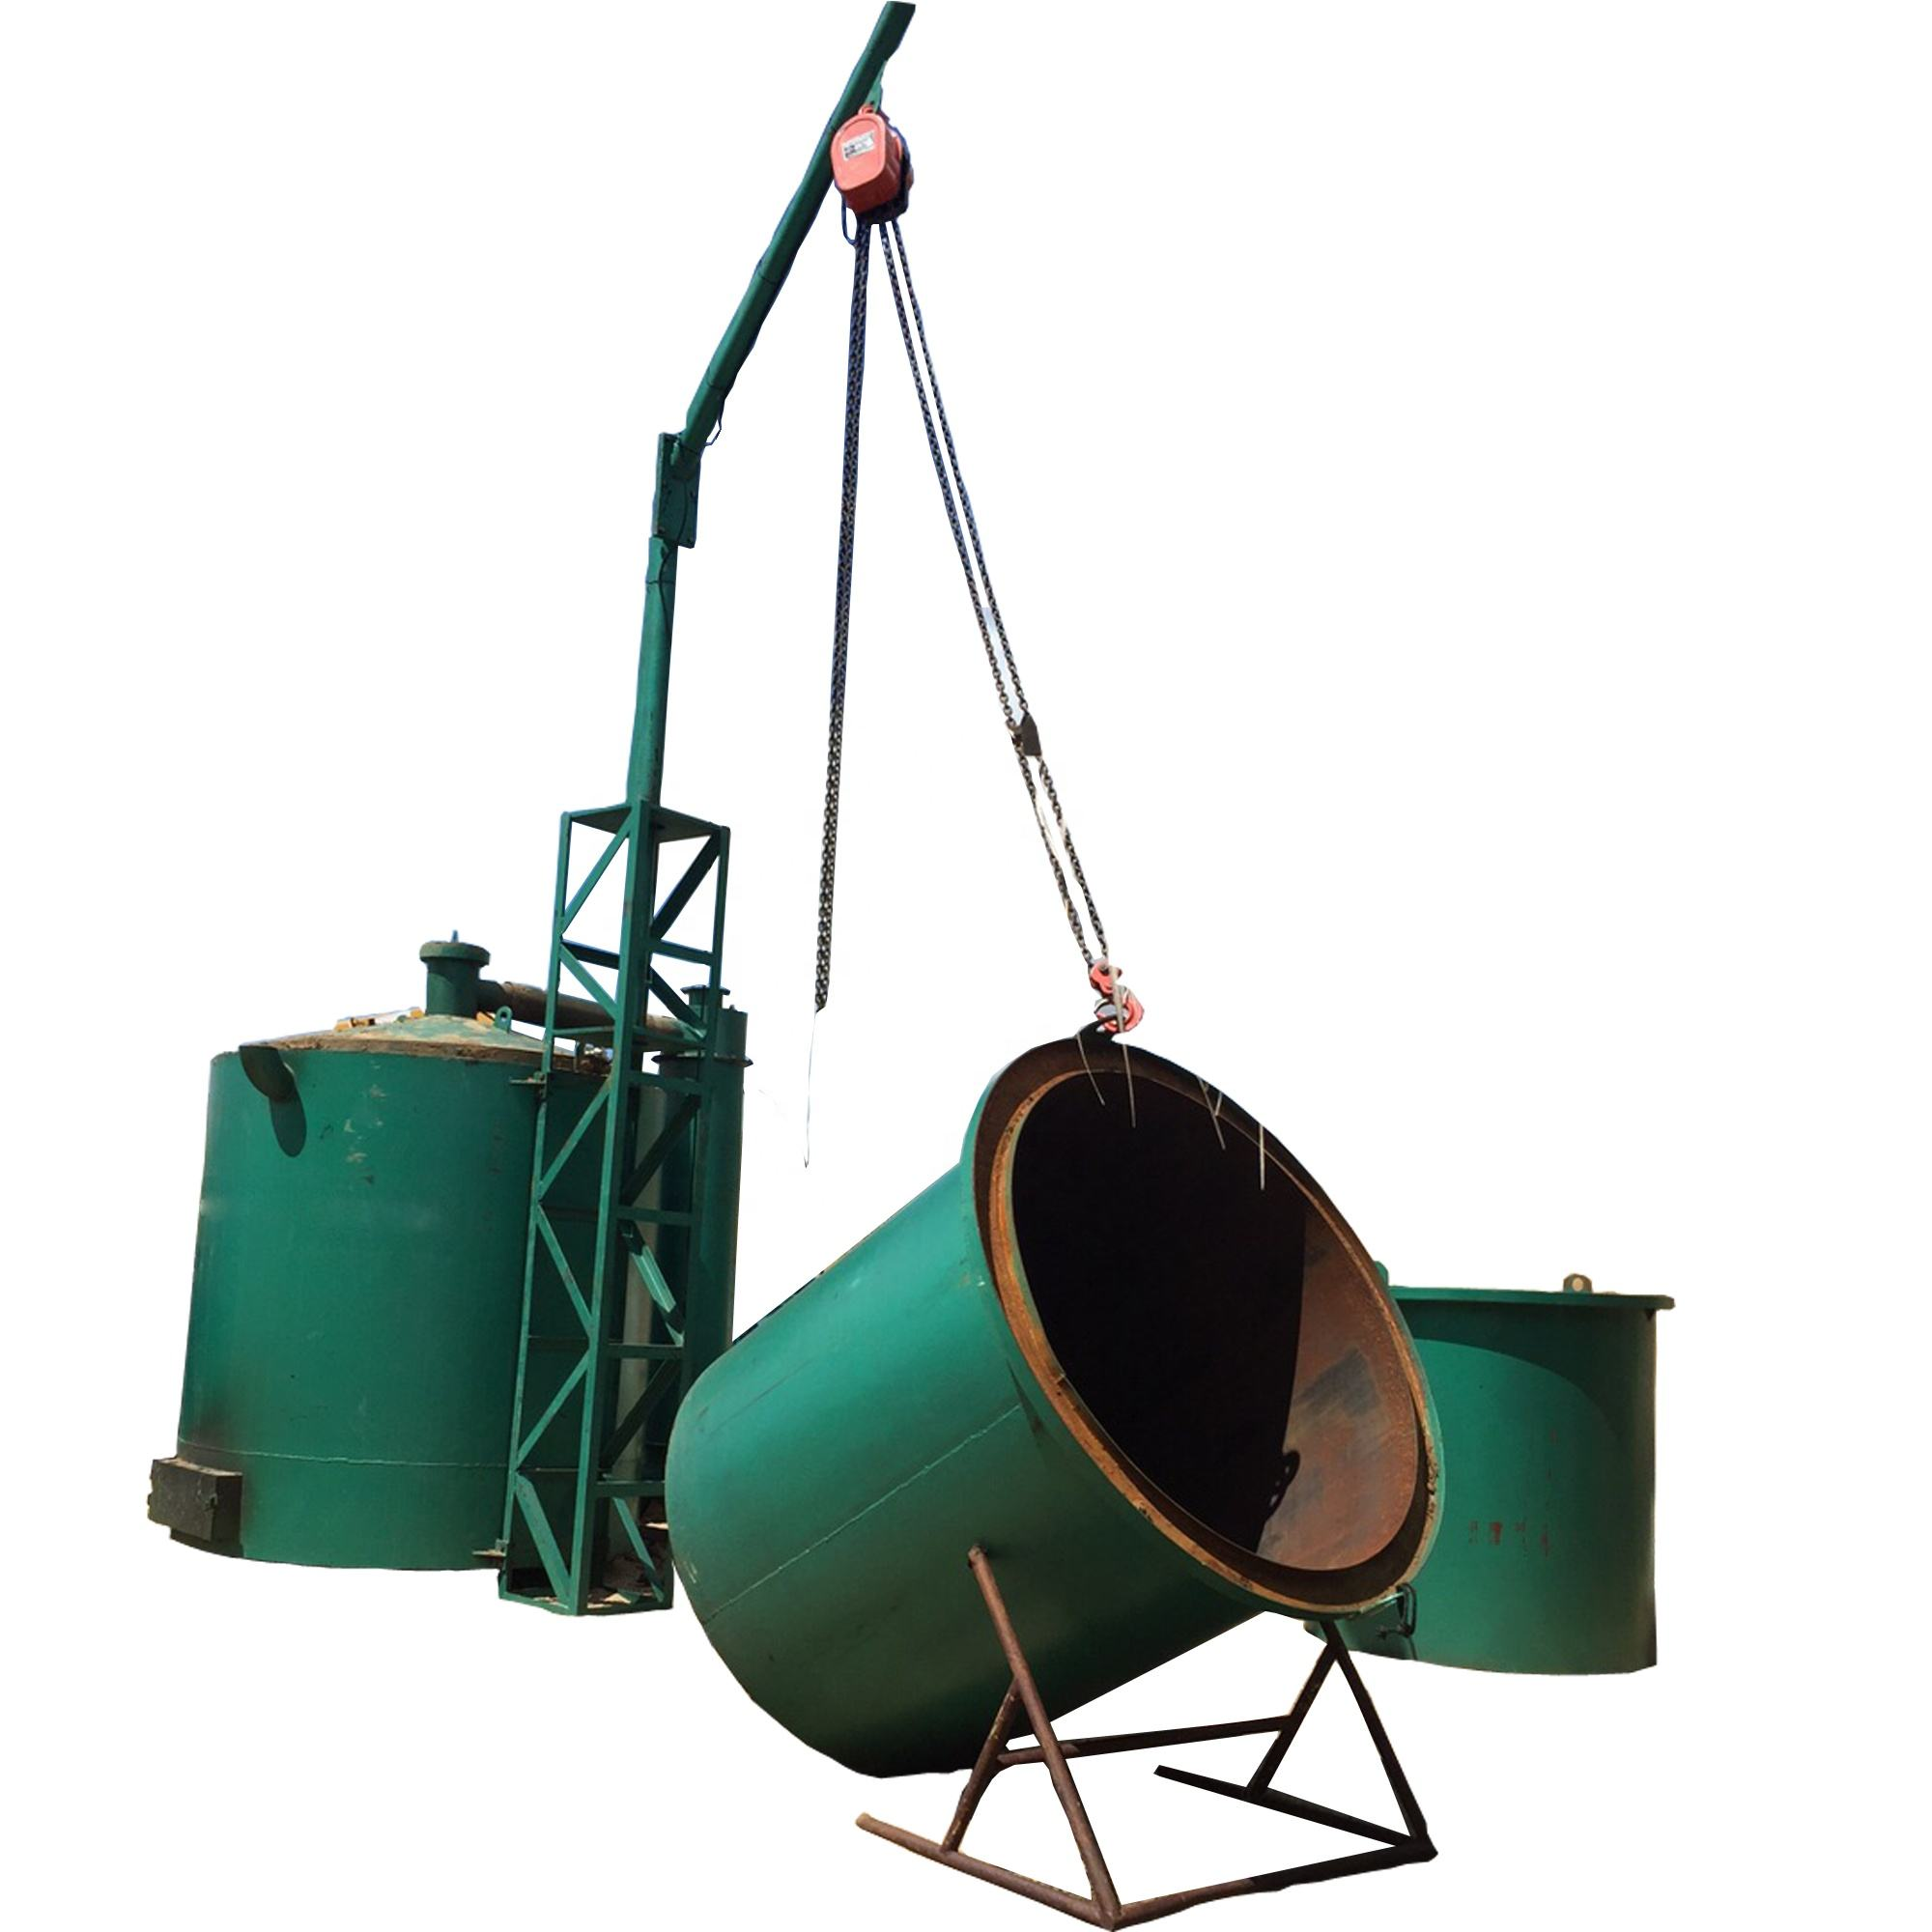 South Africa Namibia lump wood charcoal making machine price